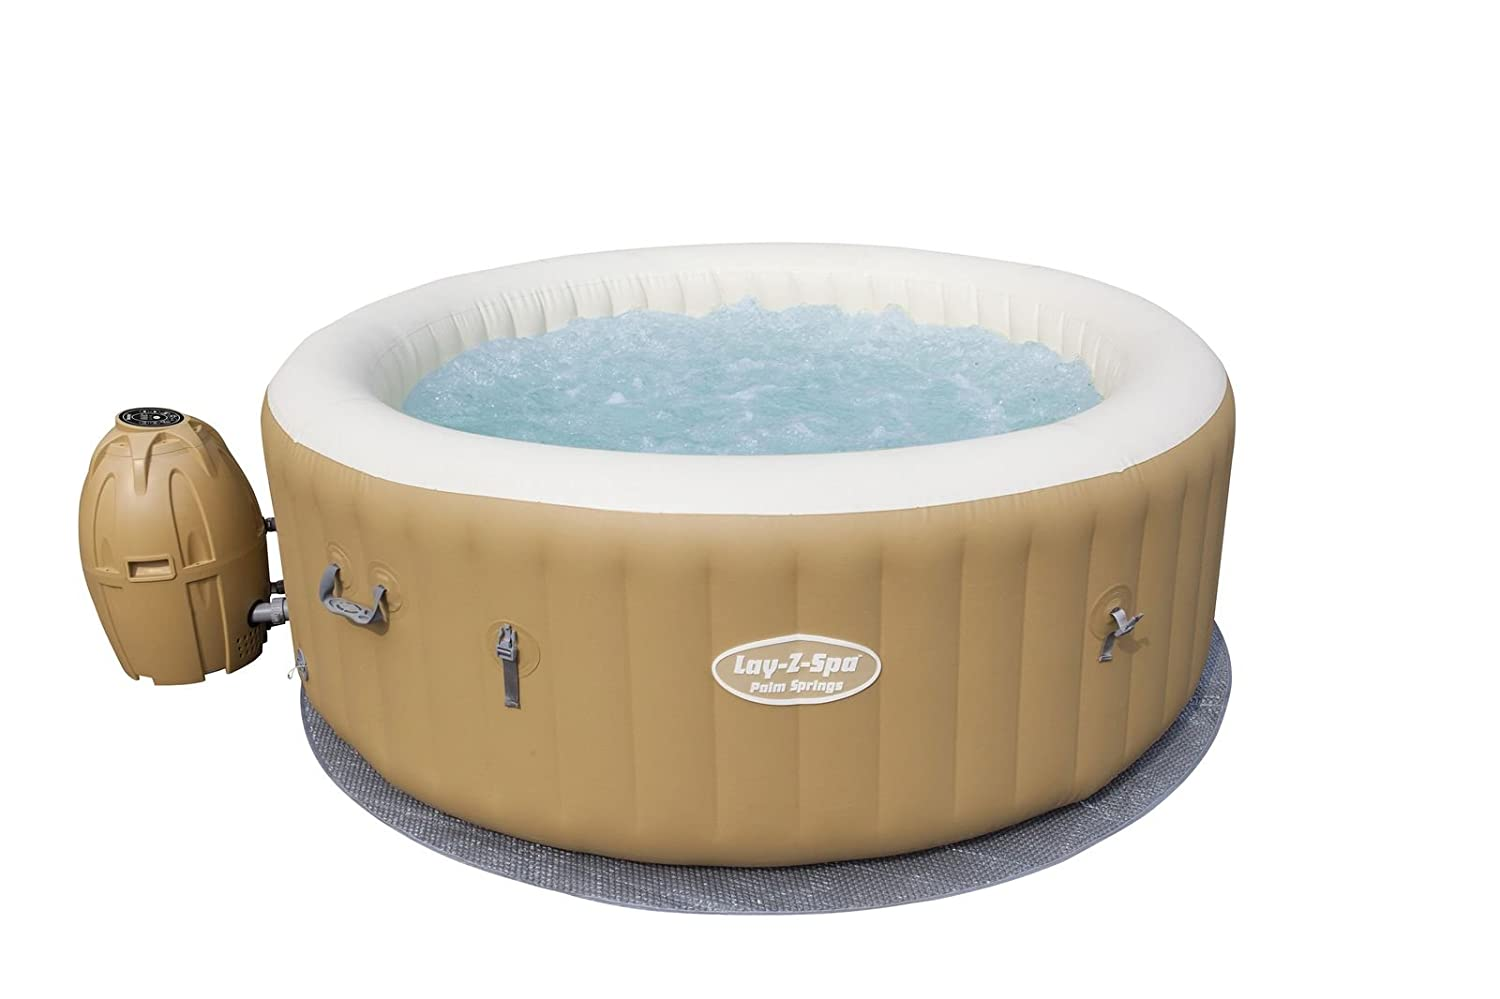 Bestway Spa Gonflable Rond 6 Personnes 120 Airjets Diam Tre 196